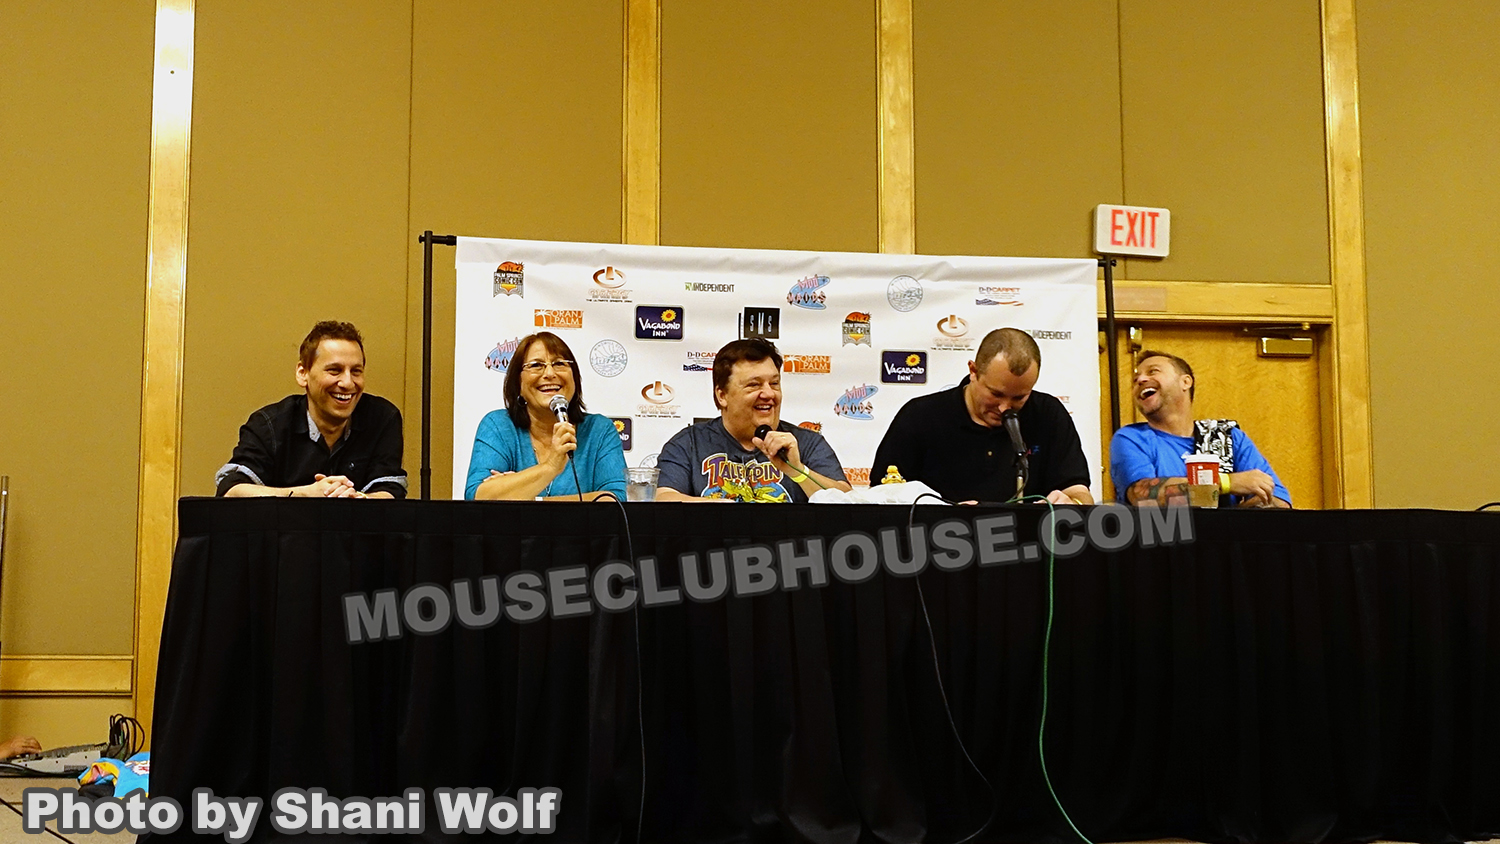 Disney Afternoon panel at Palm Springs Comic Con, with Katie Leigh from the Gummi Bears, Jymn Magon, creator of TaleSpin, moderator Jason Schlierman and Thom Wilcox, voice of Lexington in Gargoyles: The Heroes Awaken